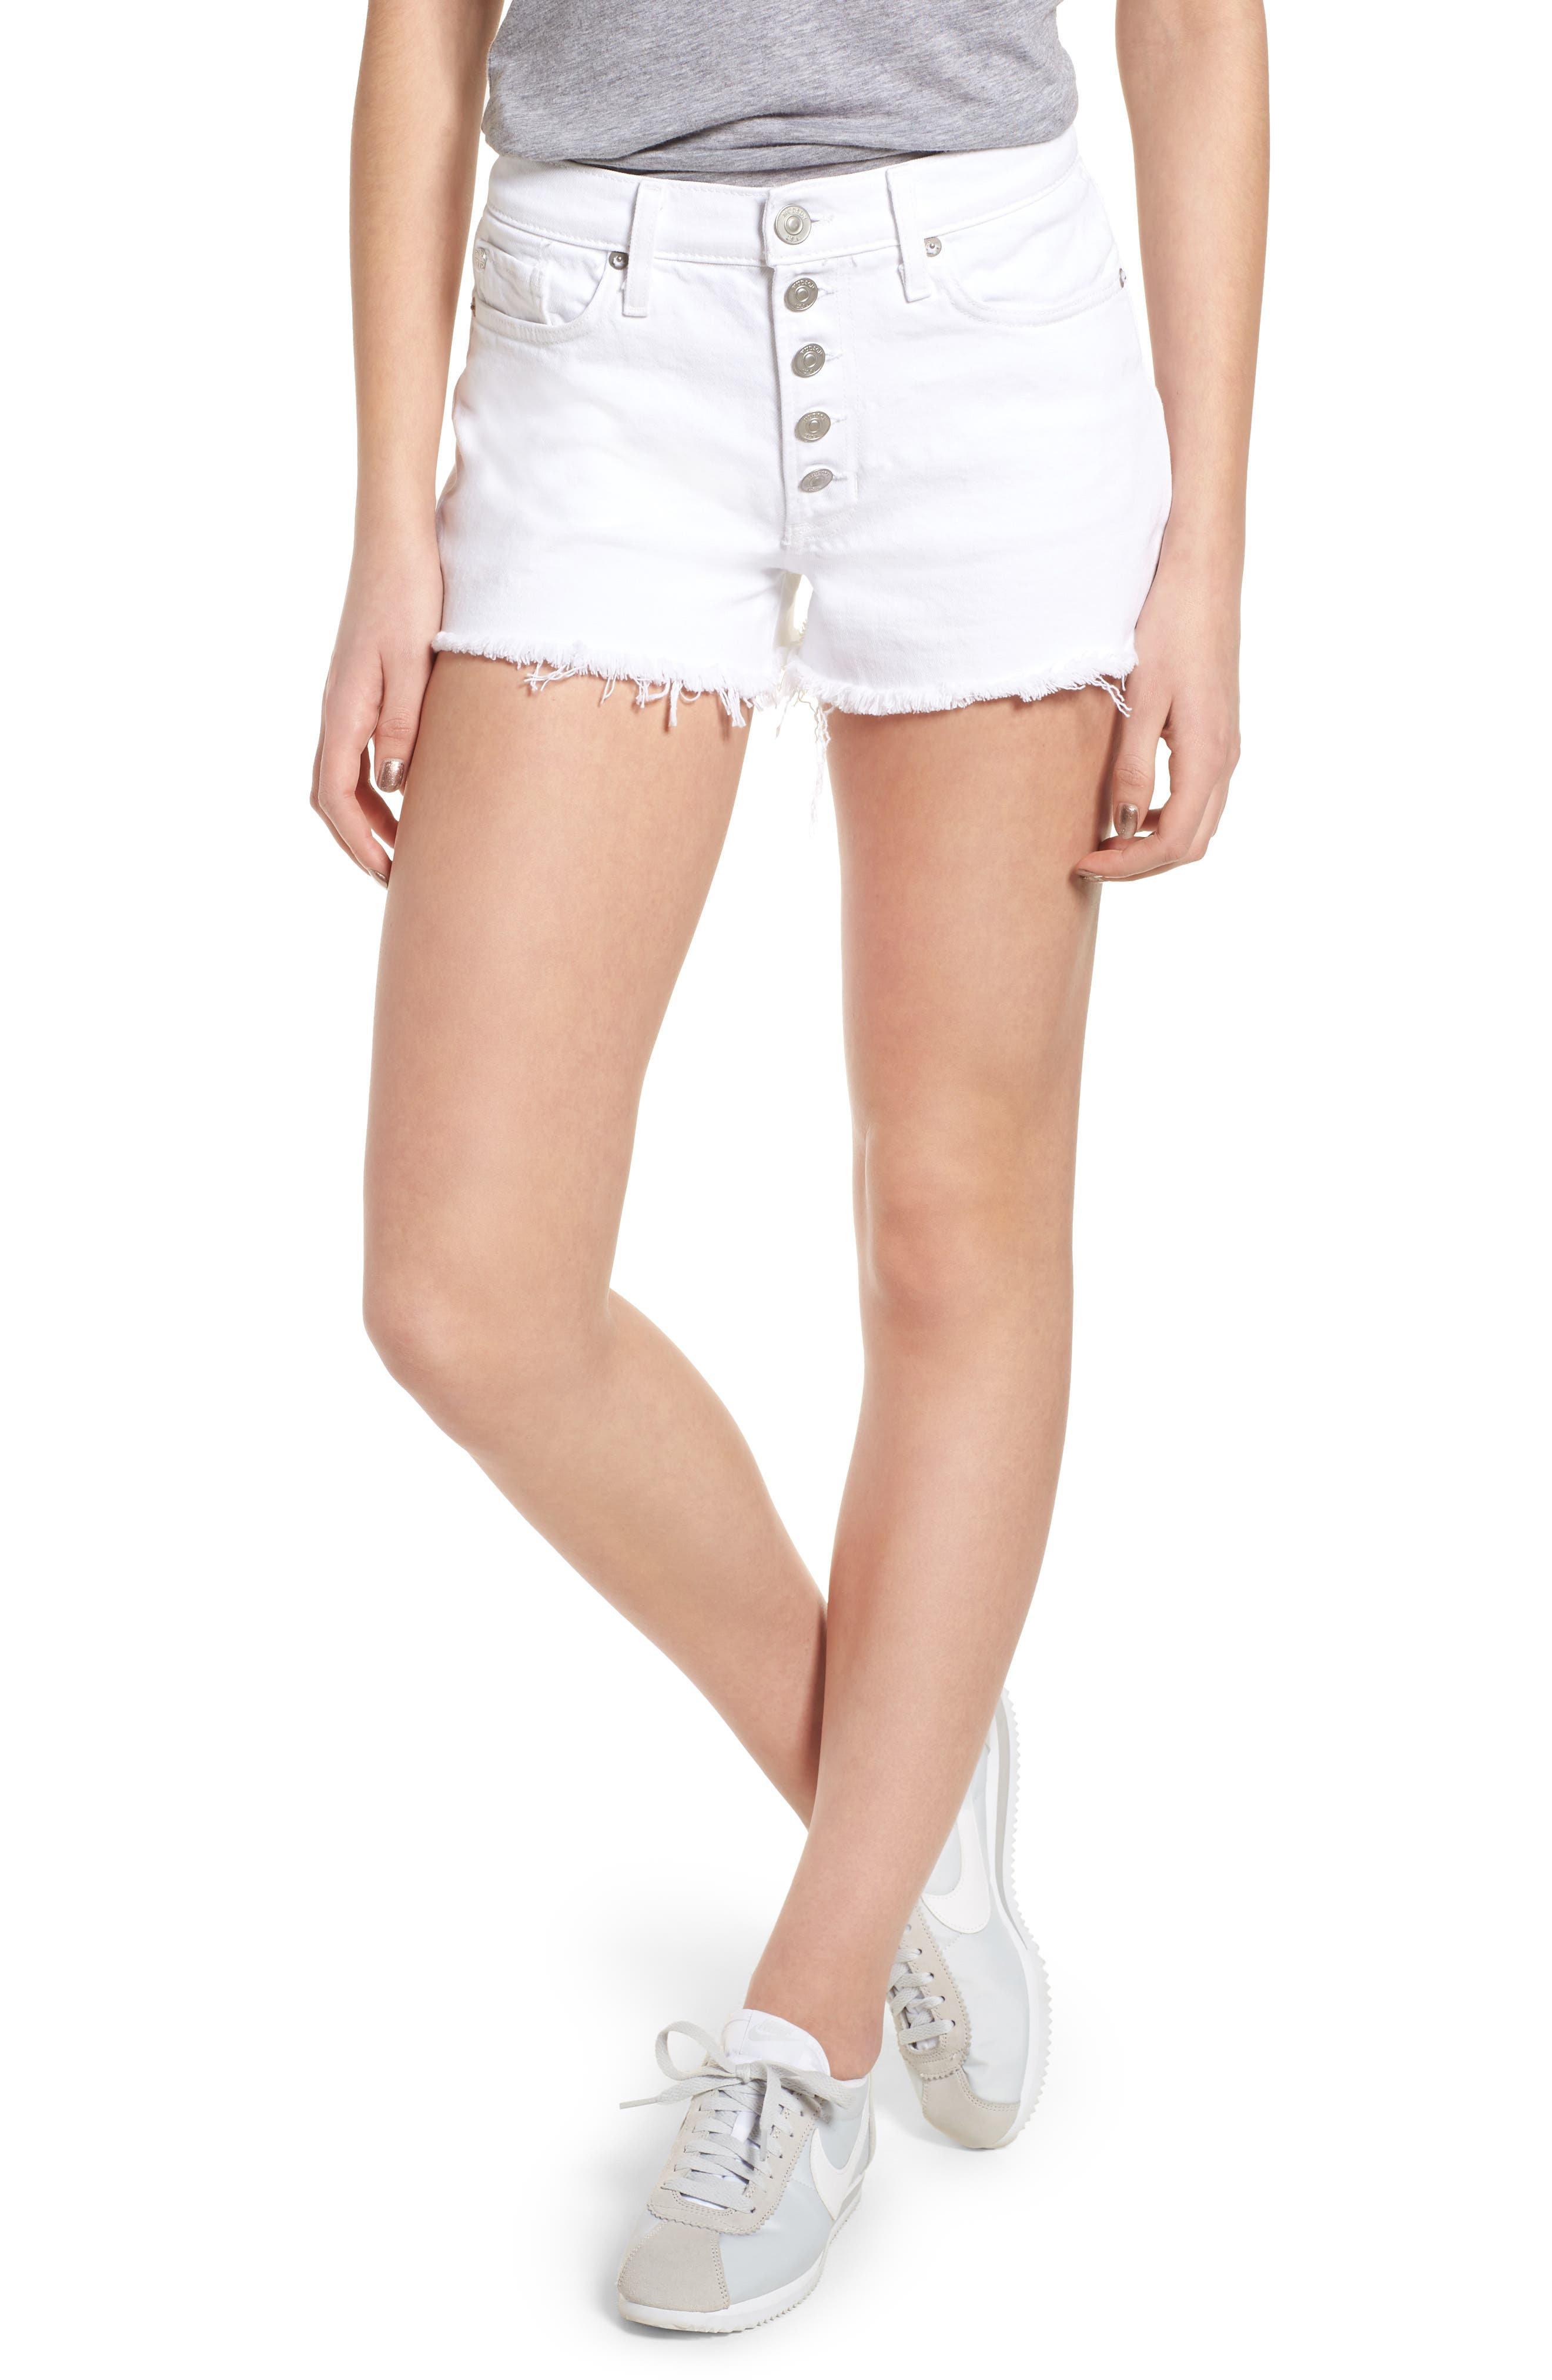 Zoeey Button Fly High Waist Denim Shorts,                             Main thumbnail 1, color,                             120